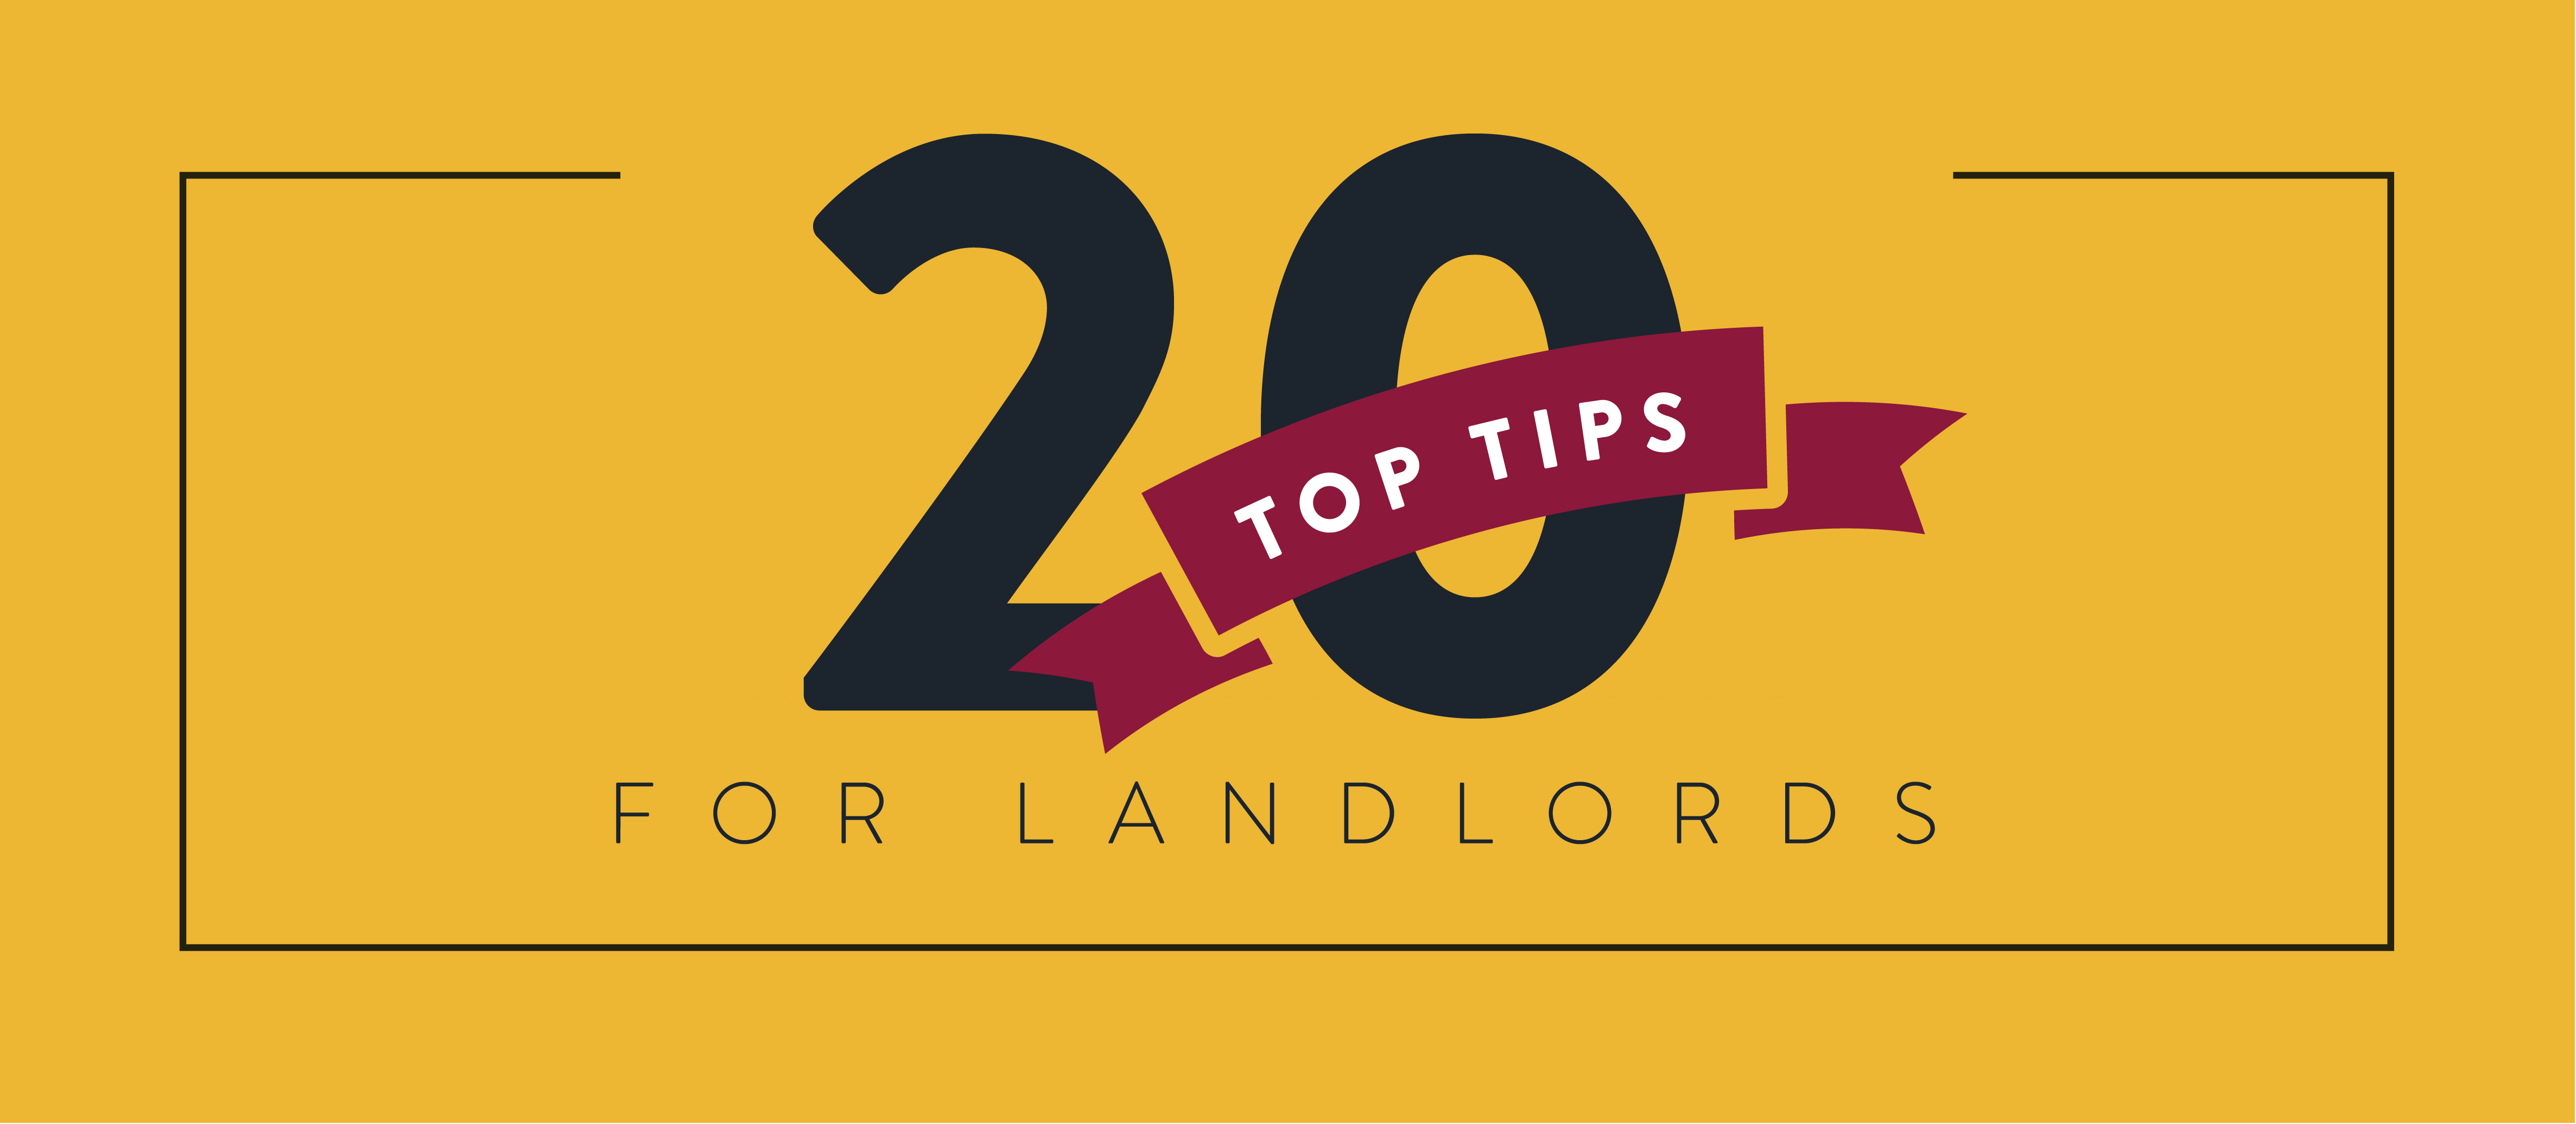 20 Top Tips for Landlords